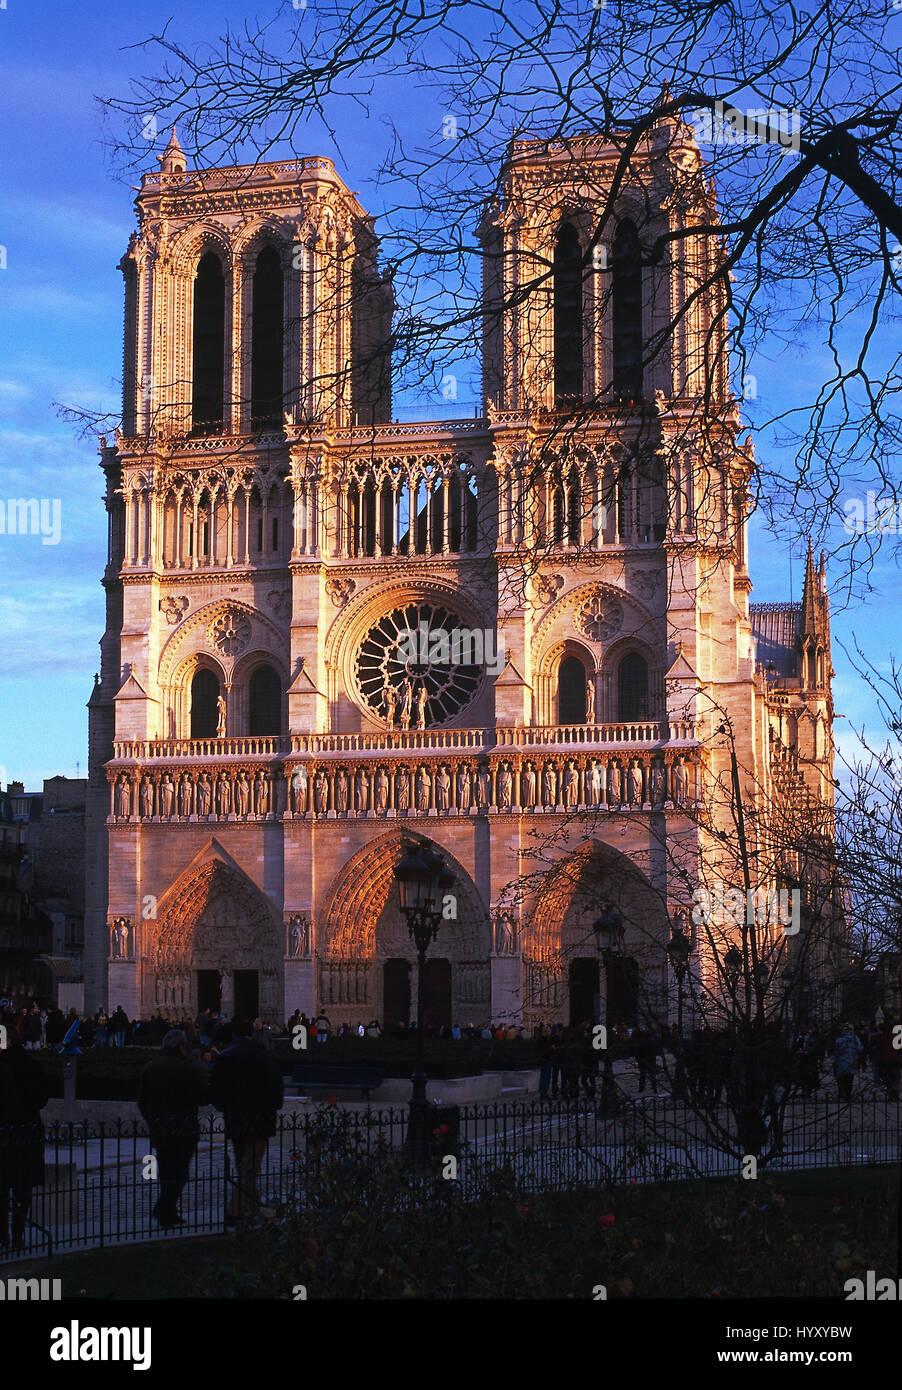 Notre-Dame de Paris ( 'Our Lady of Paris') view at sunset, Paris, France - Stock Image